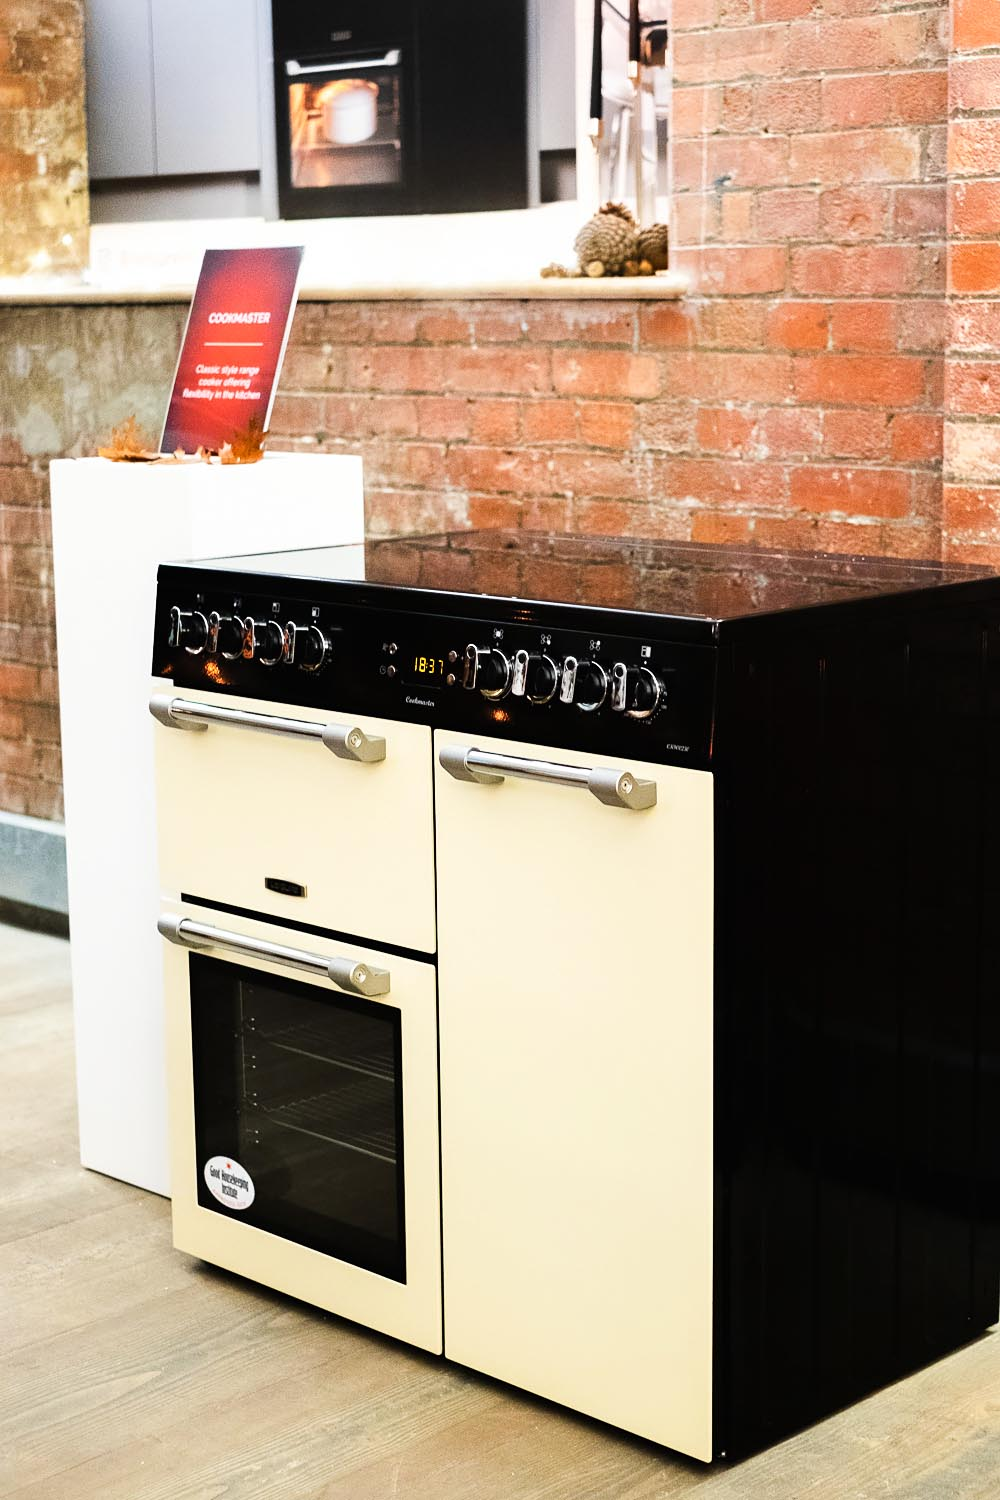 The Leisure brand has over 120 years of range cooking history, since the introduction of the first ever range cooker in 1883. Today, they continue to ensure that every range cooker produced has the very highest quality and performance, combined with the latest cutting edge design.